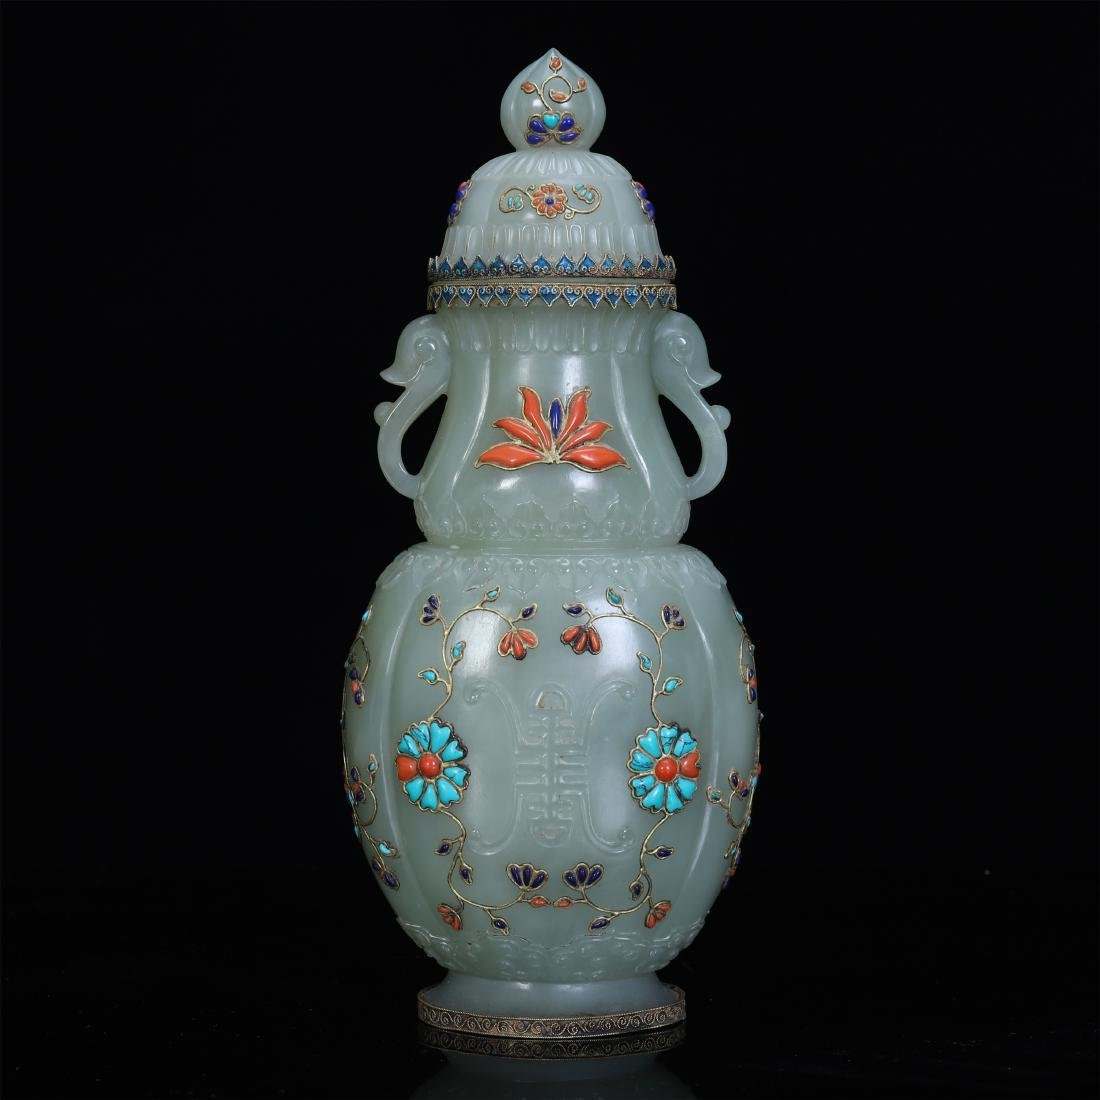 An Extremely Rare Jade Hindustan Vase Embellished with